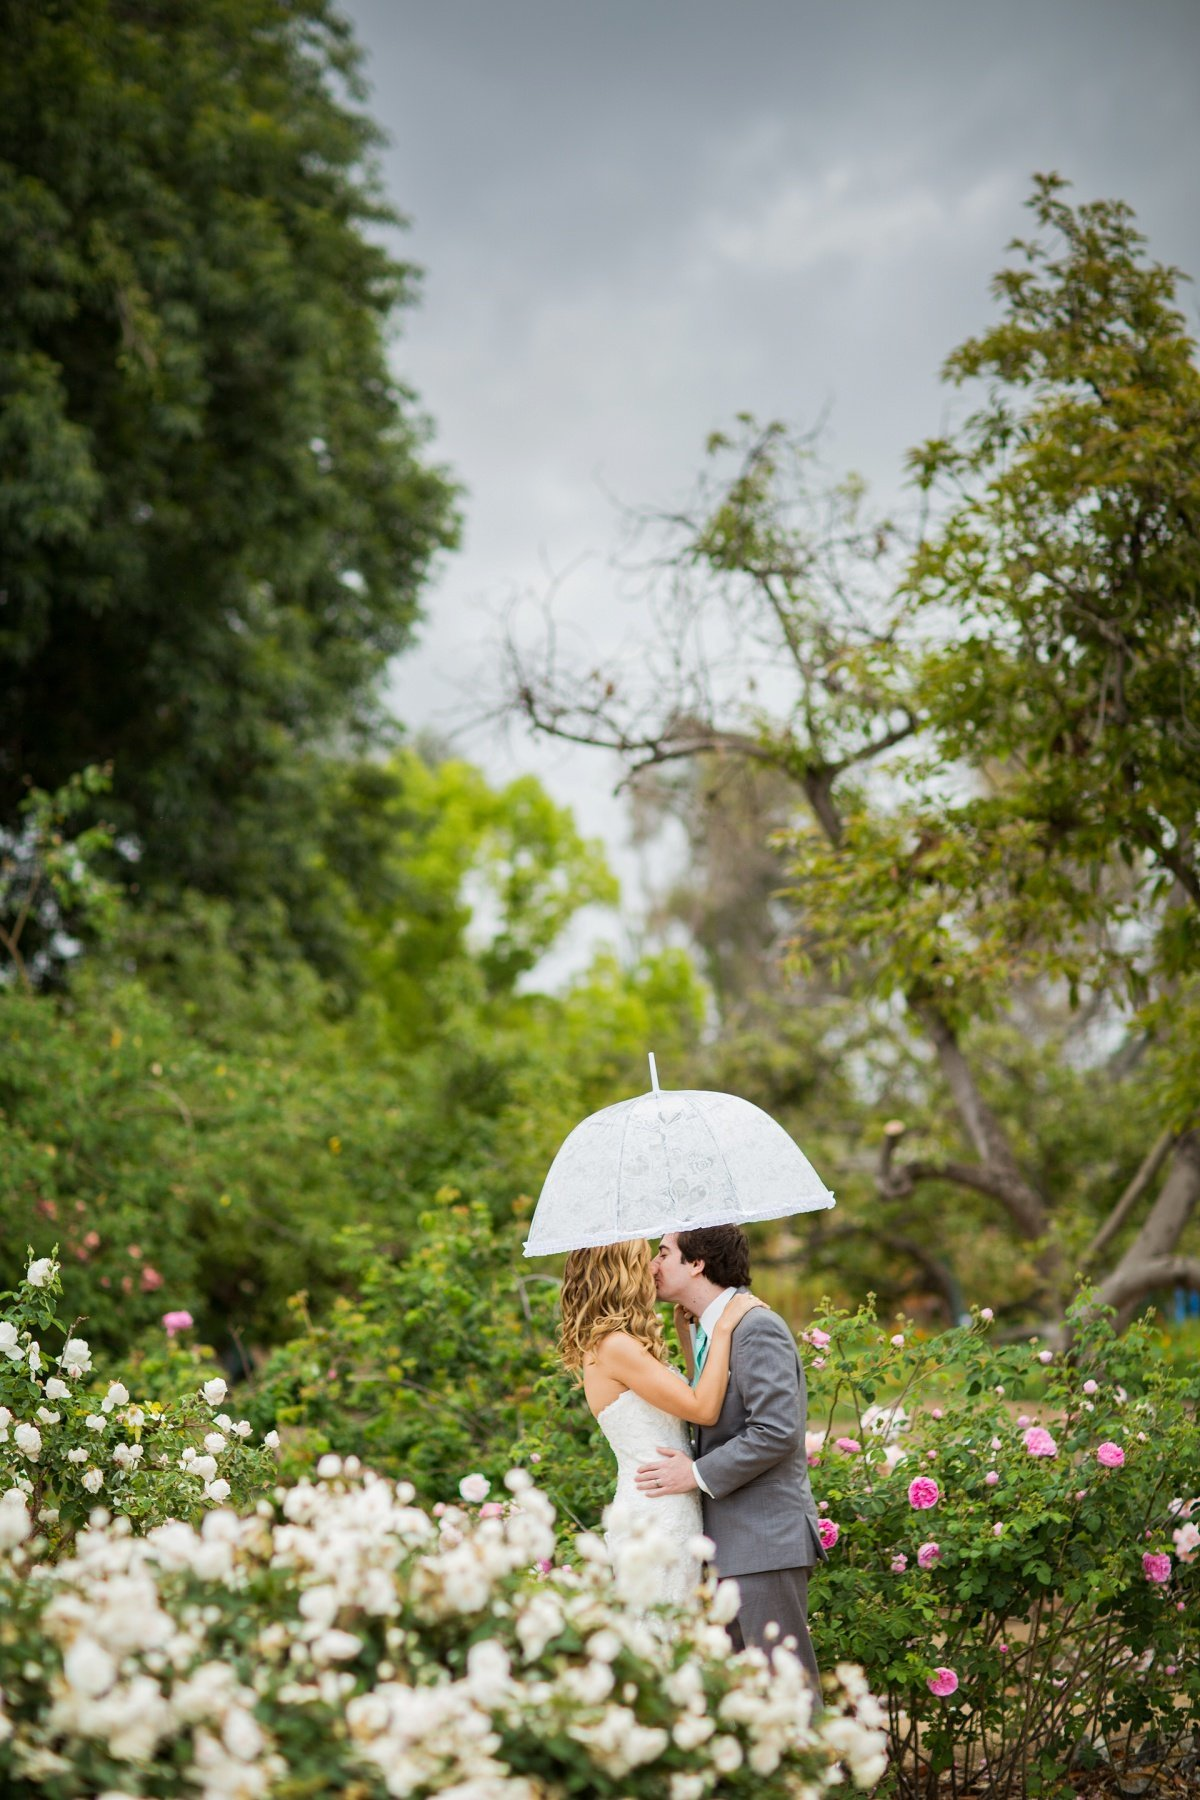 Orange County Wedding Photographer & Los Angeles Wedding Photography Wedding Photos In Orange County by Three16 Photography 16